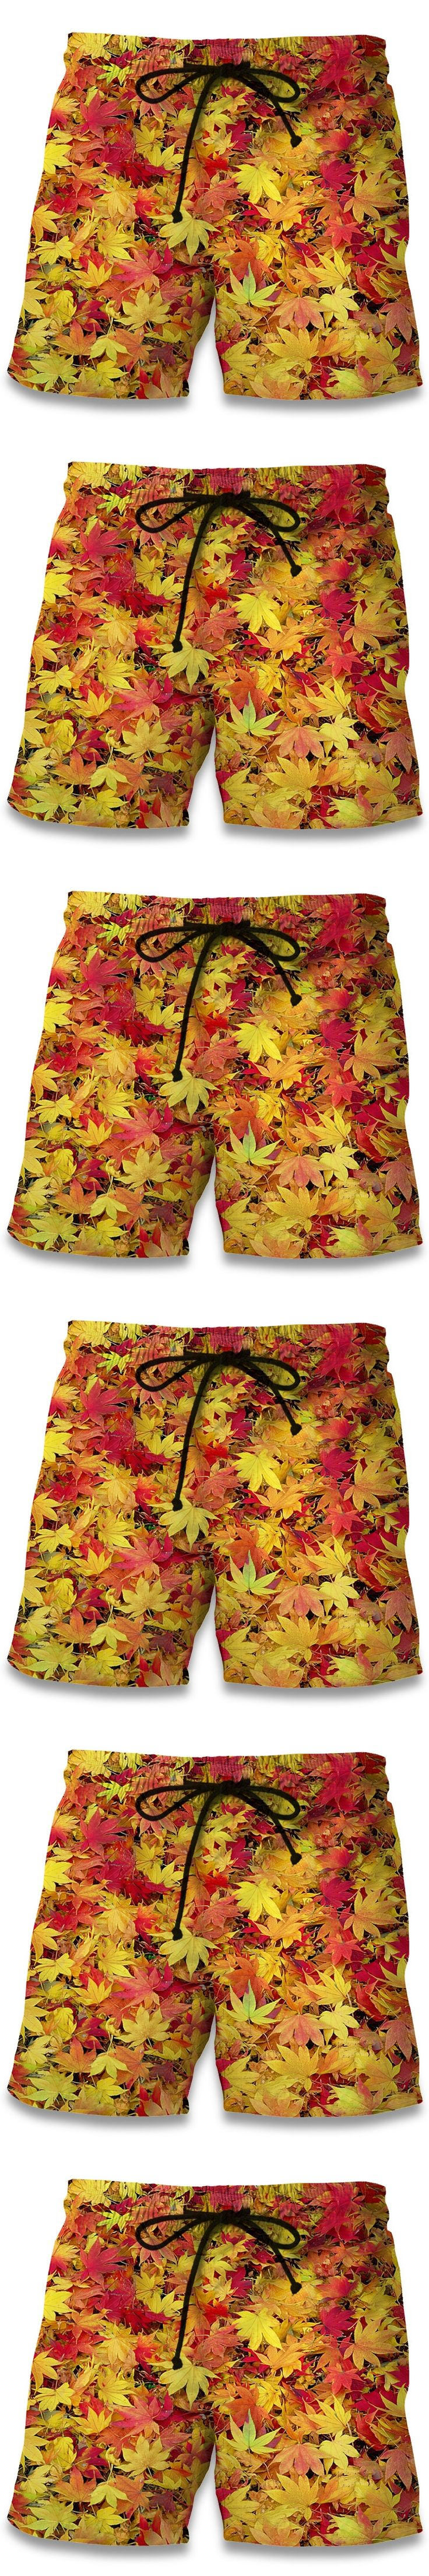 Summer Men Beach Shorts 2017 Yellowed maple leaf 3D Print Fashion Men's Bermuda Boardshorts Fitness Trousers Plus Size Quick Dry